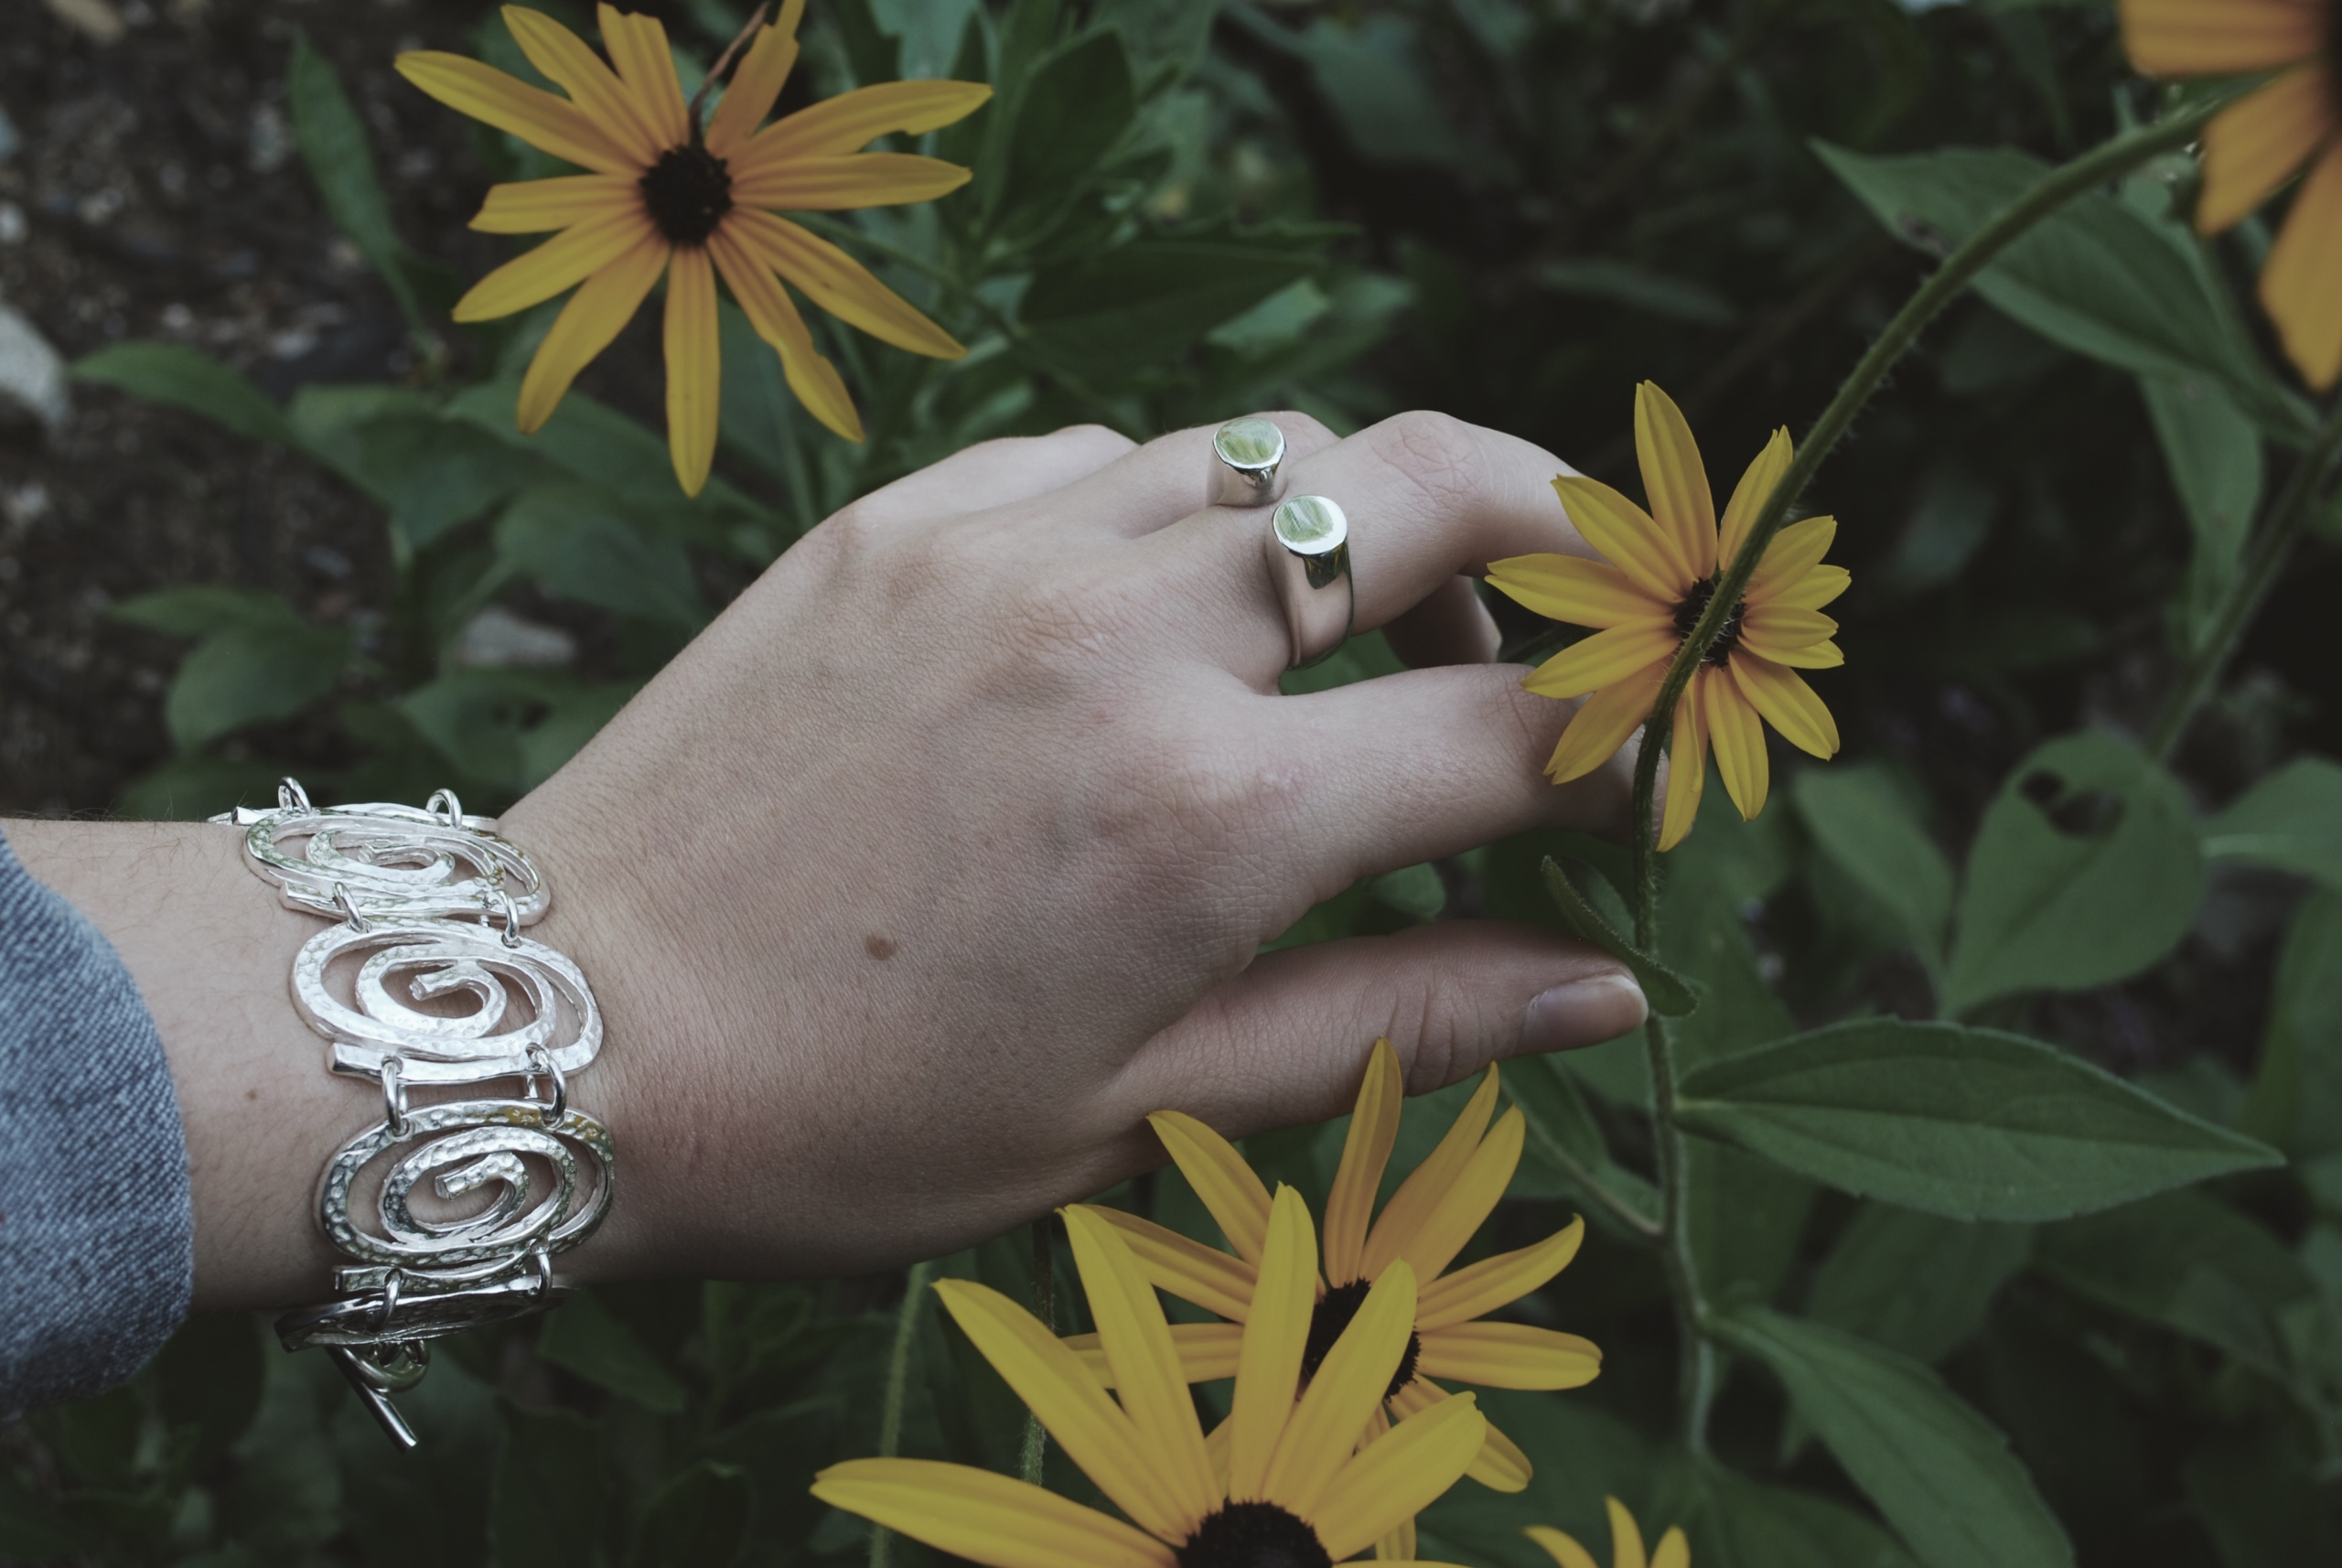 sunflowers with rings